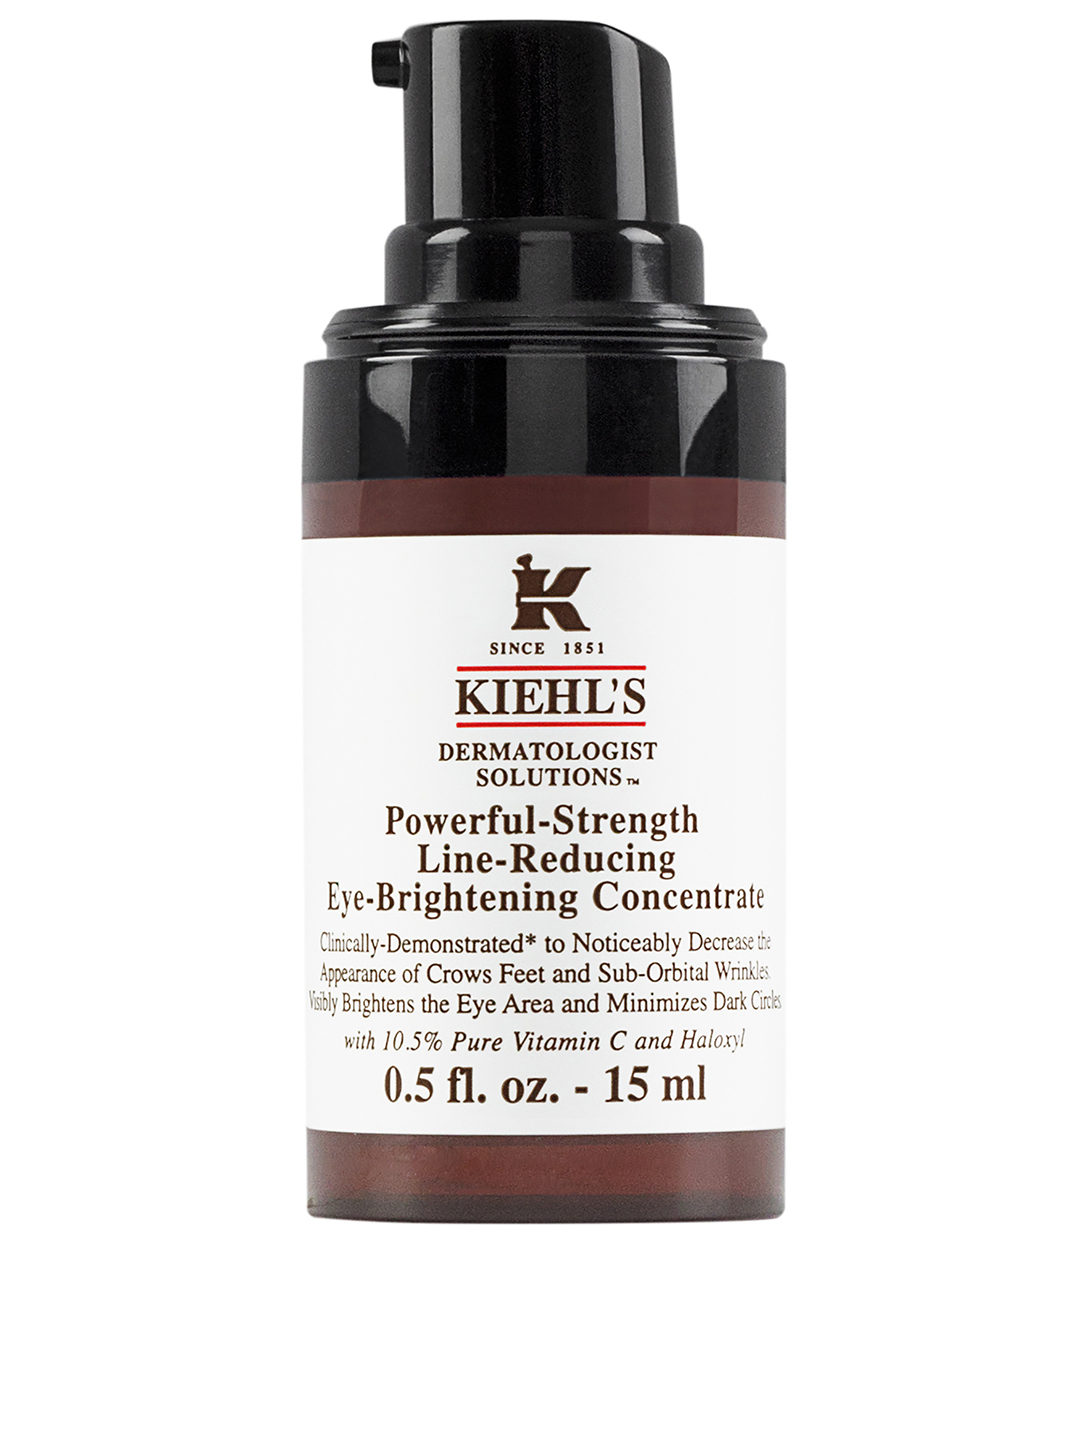 KIEHL'S Powerful-Strength Line-Reducing Eye-Brightening Concentrate Beauty